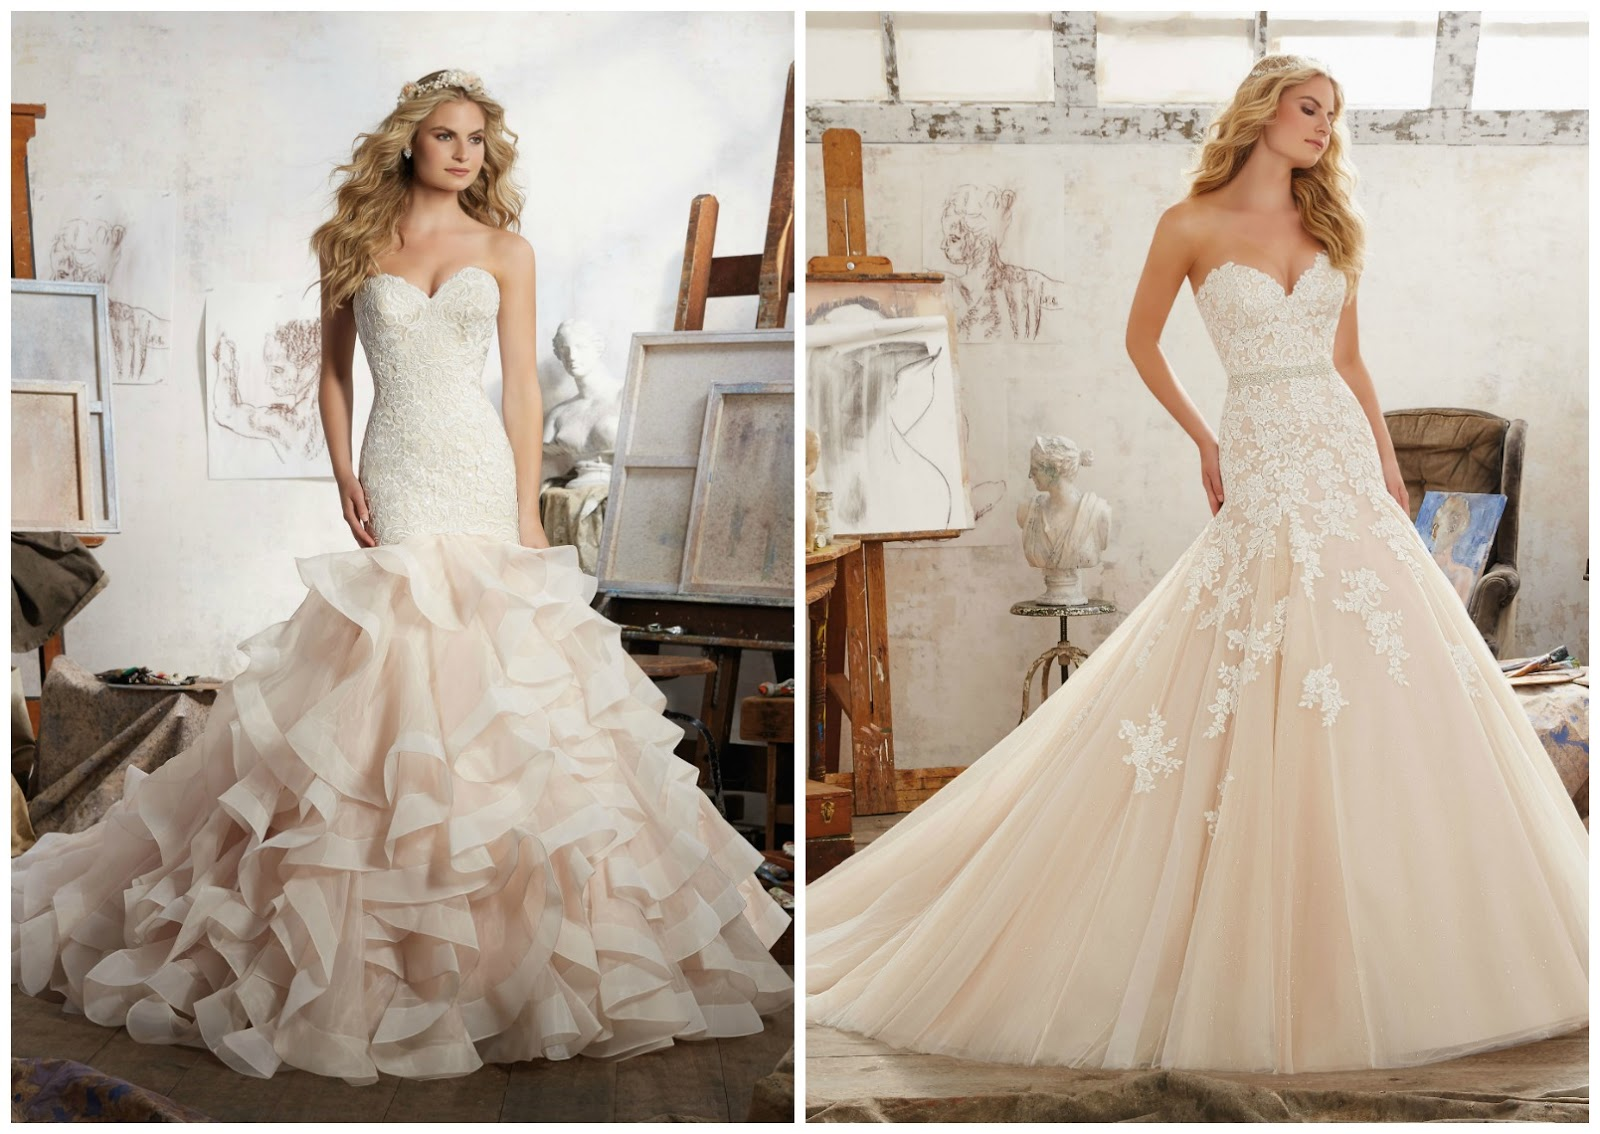 Brides of america online store wedding dresses come in for Wedding dress shades of white